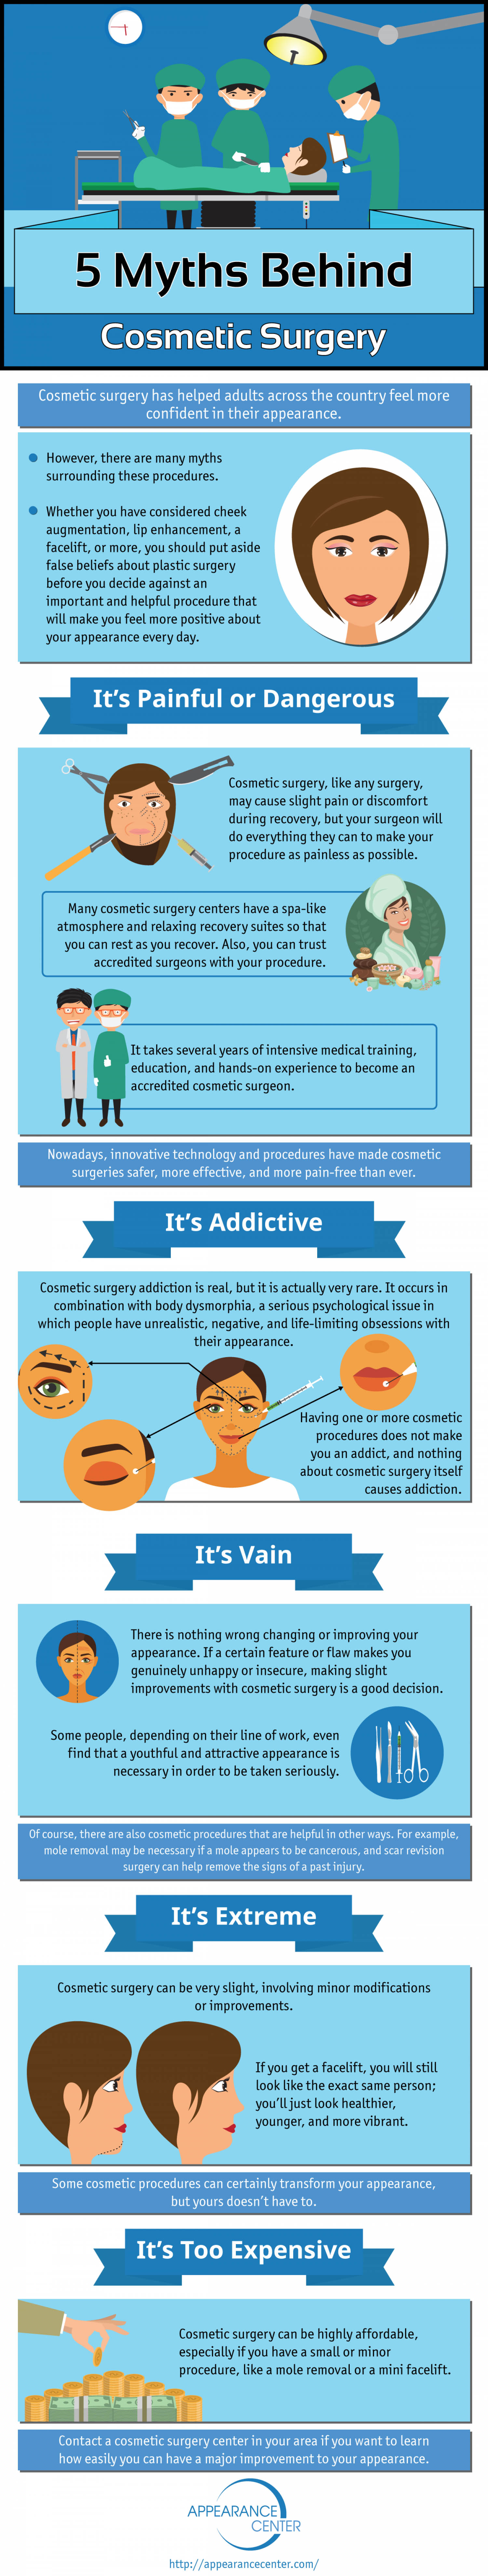 5 Myths Behind Cosmetic Surgery